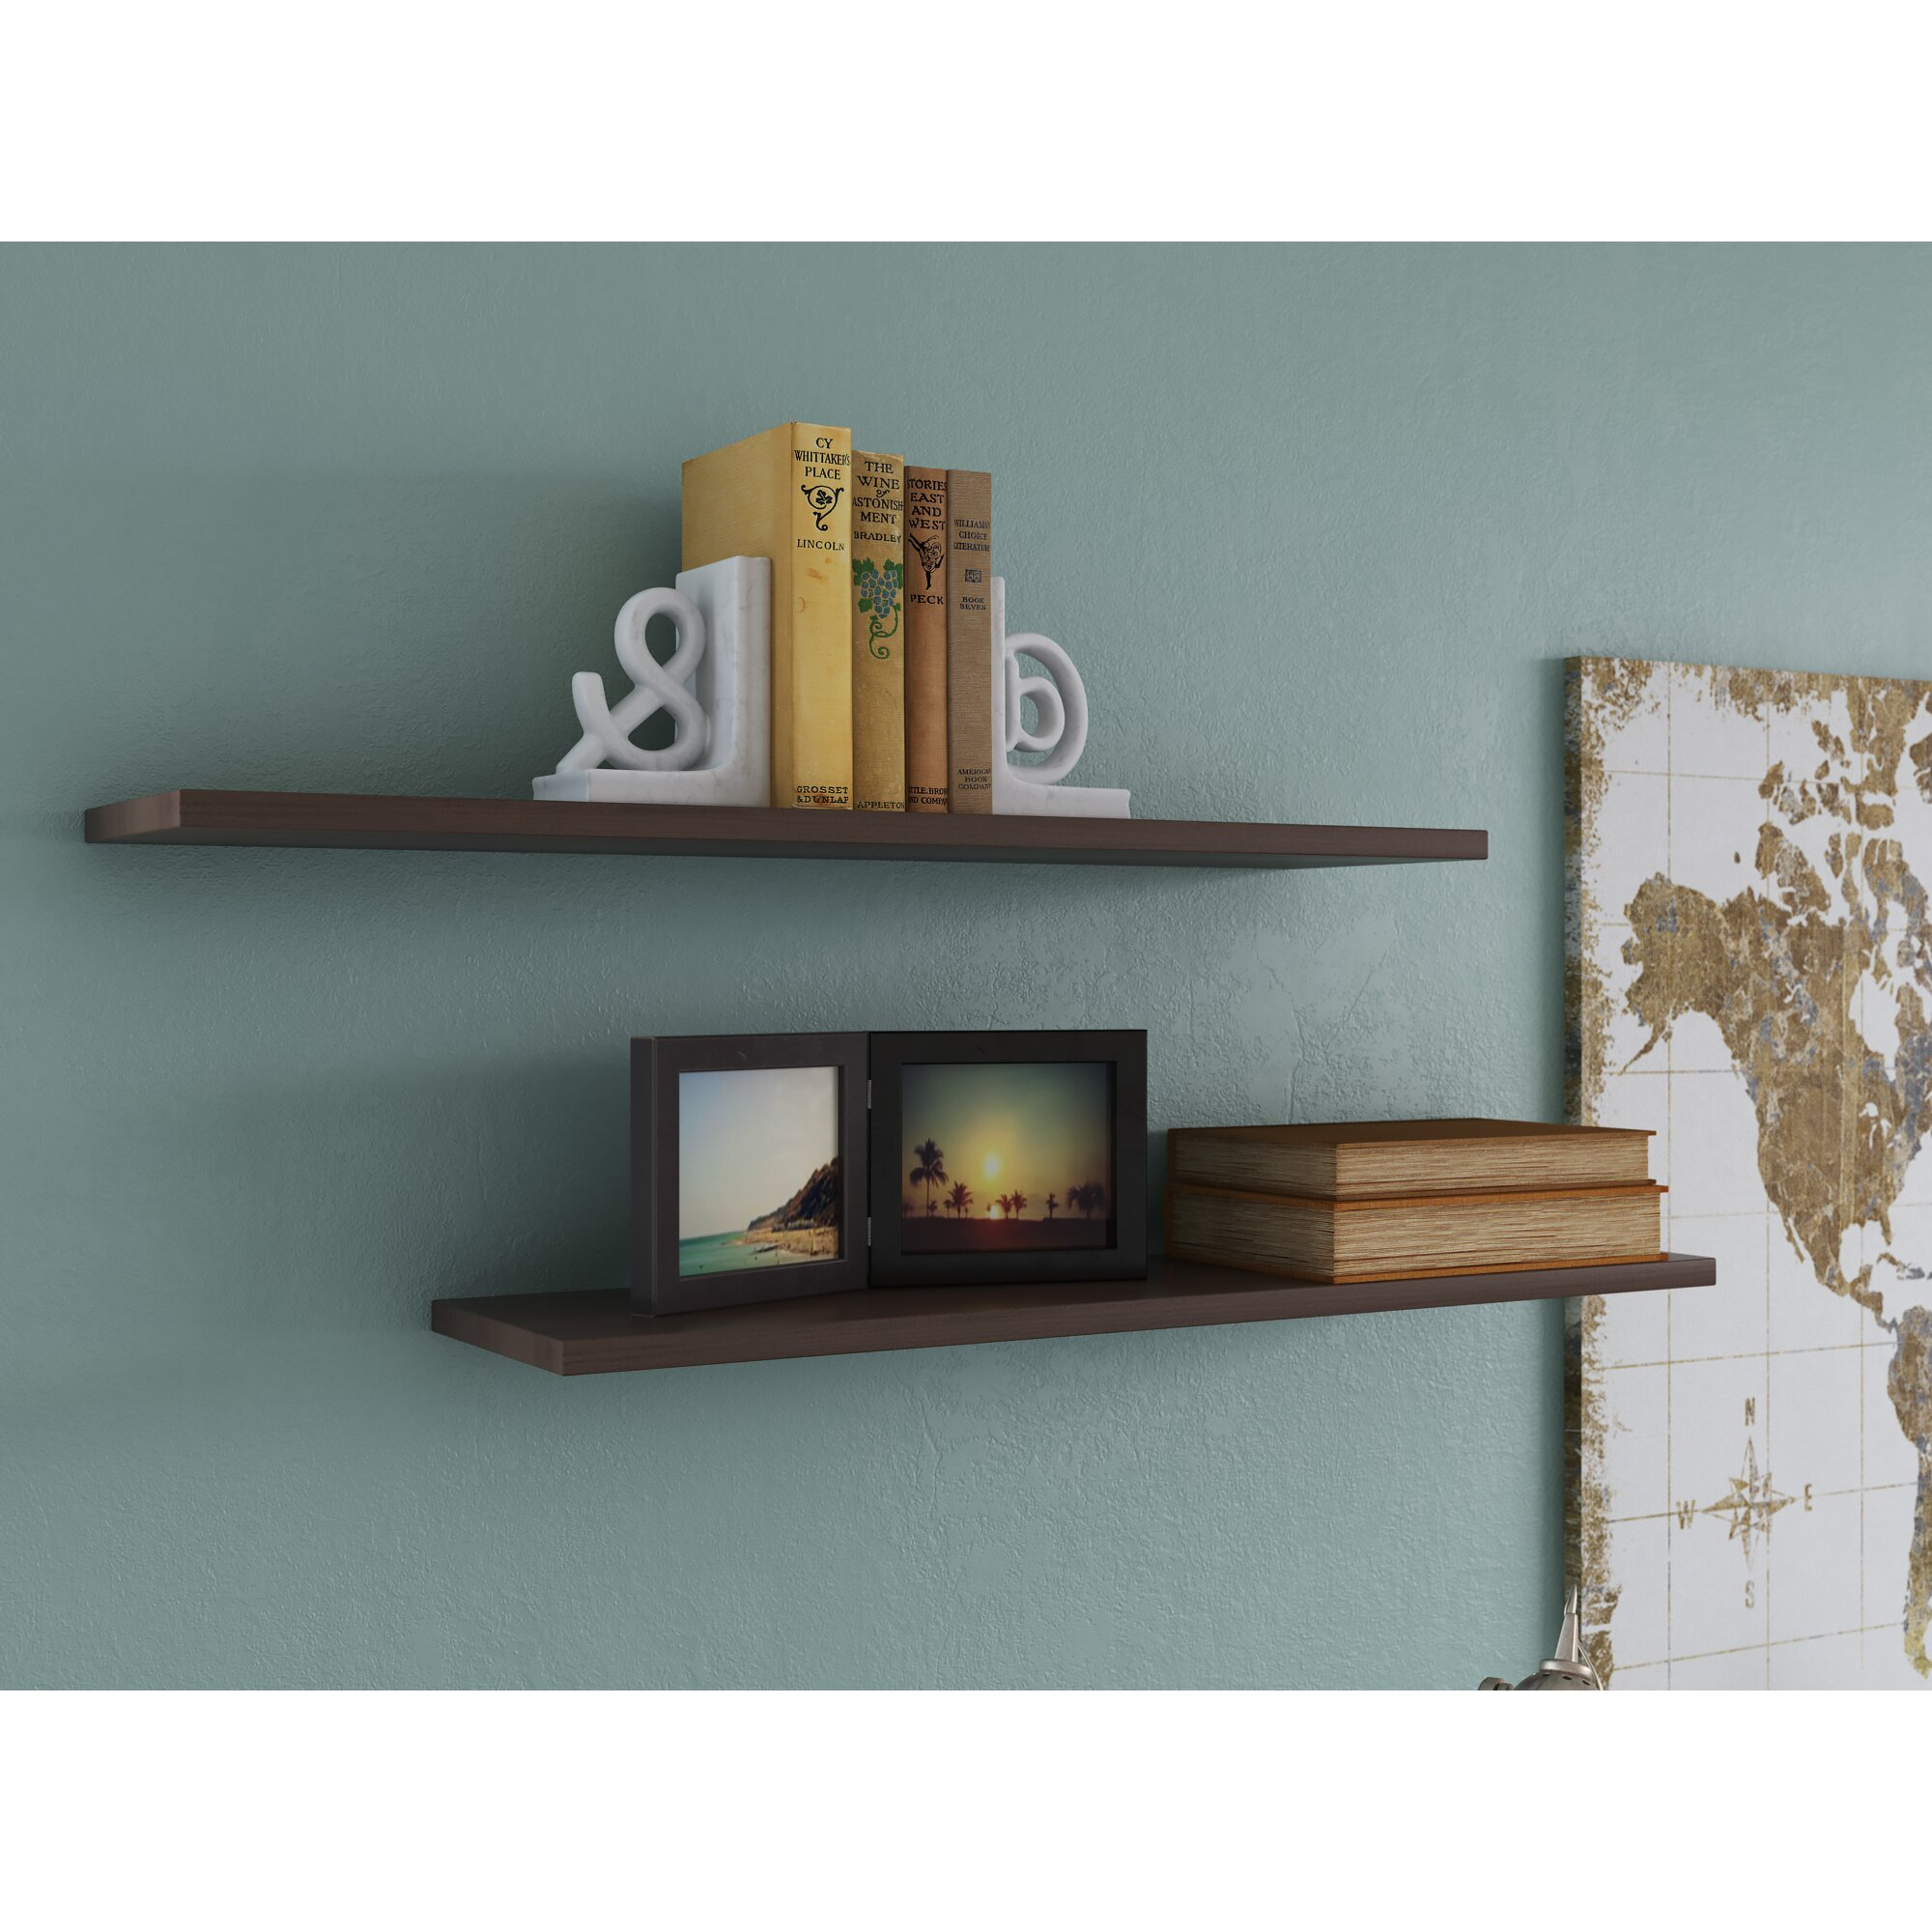 Varick gallery wall shelf 36 eco floating display shelf for Gallery wall shelves